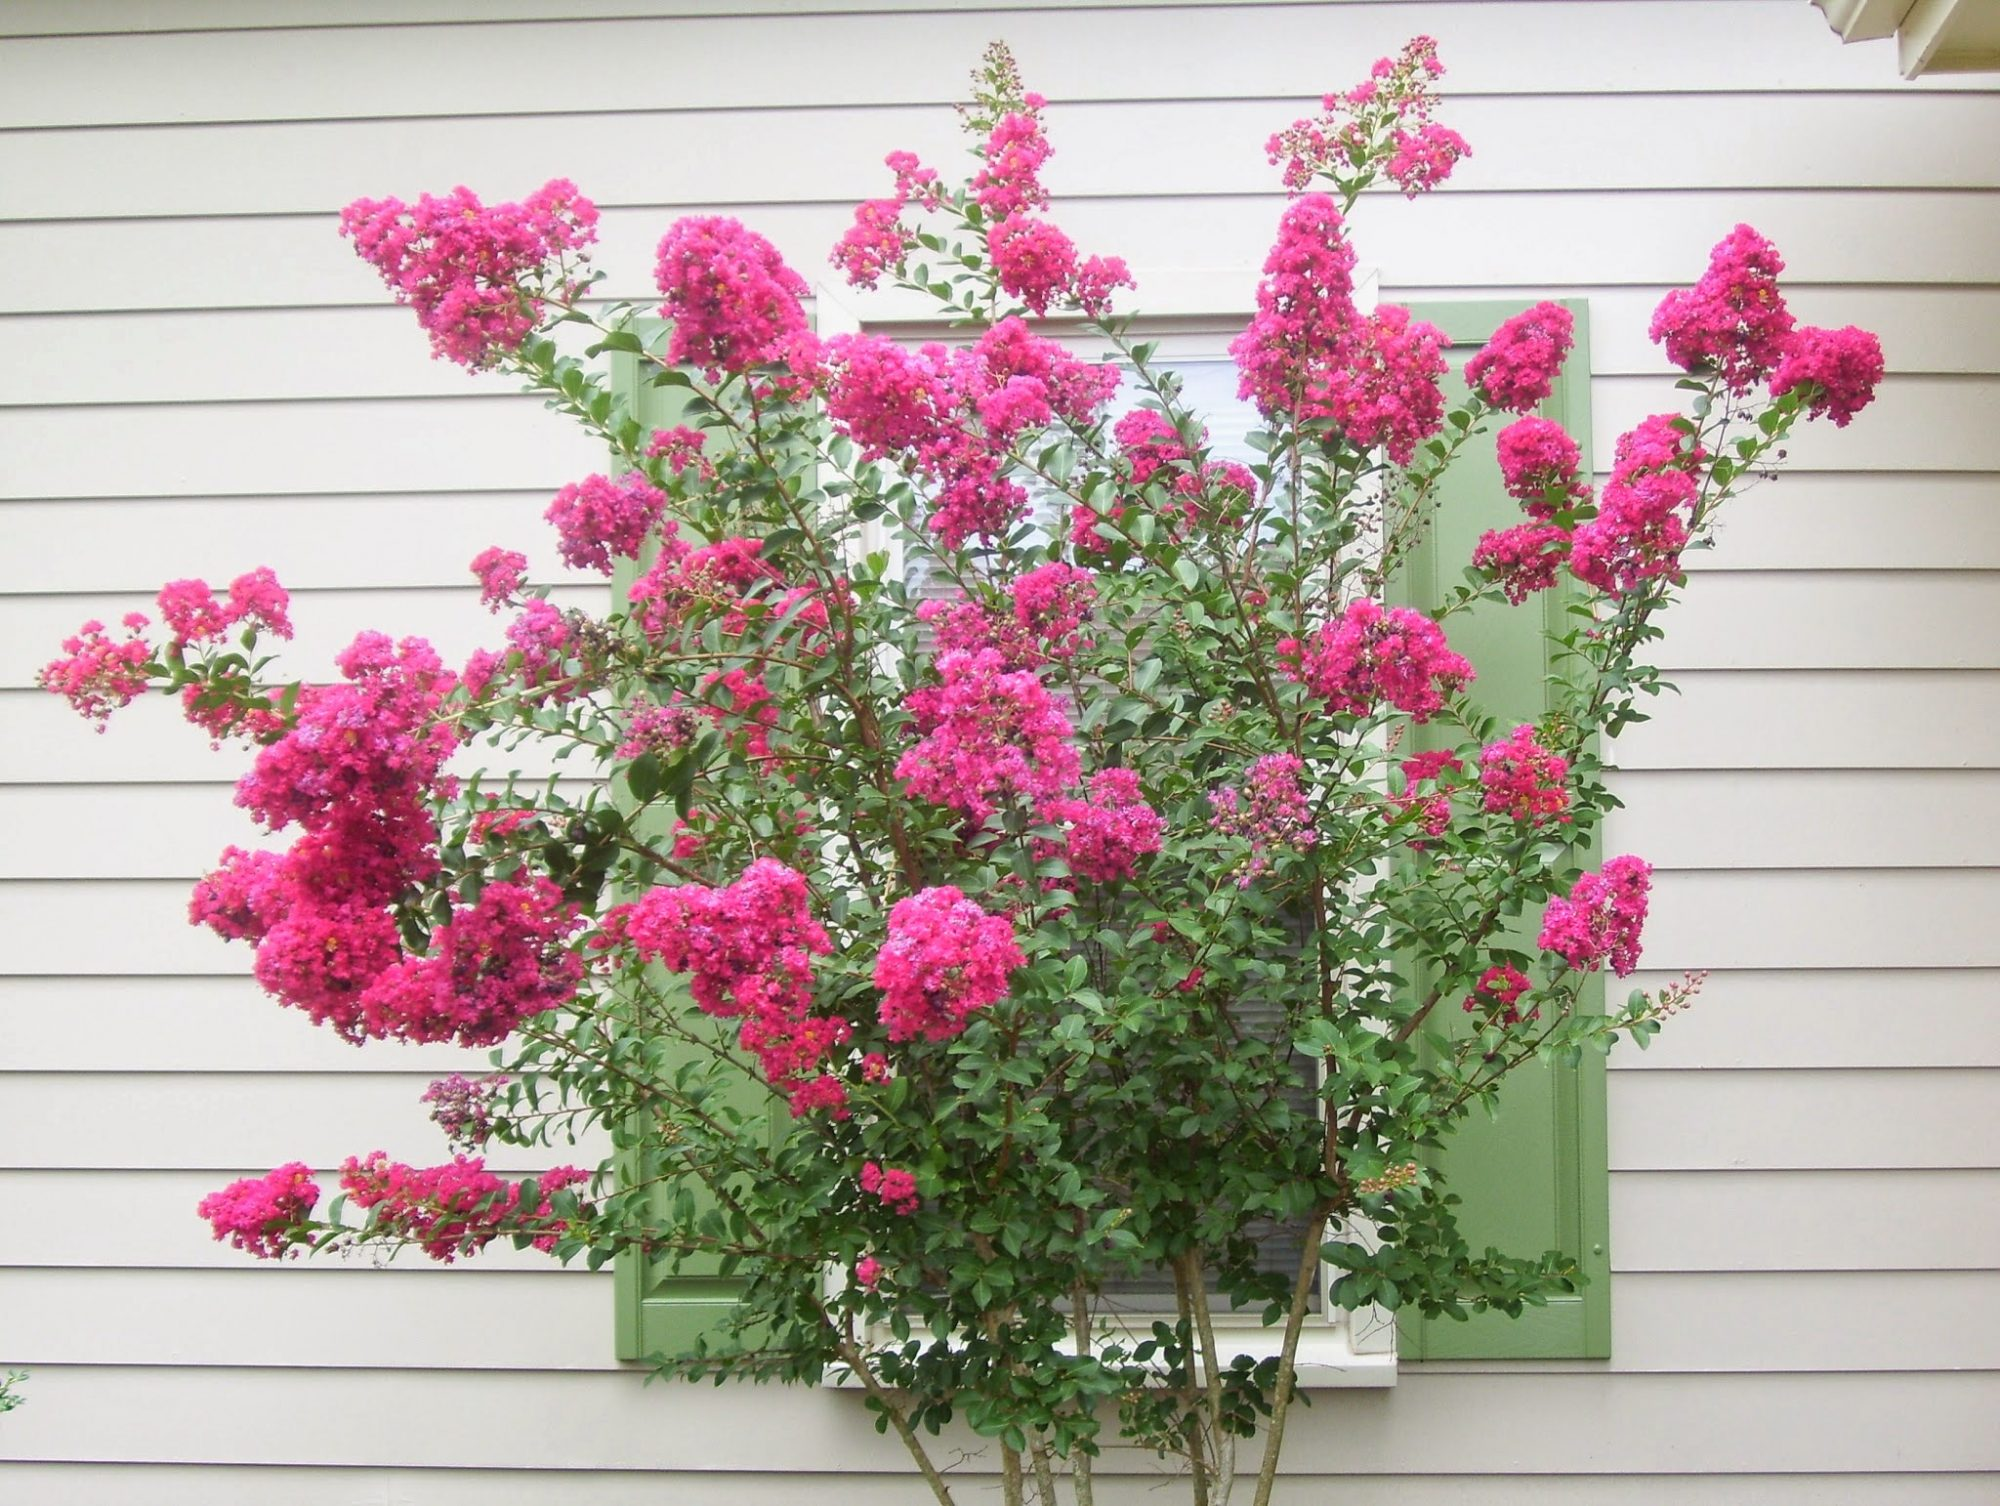 Crepe Myrtle Tree in Front of Window